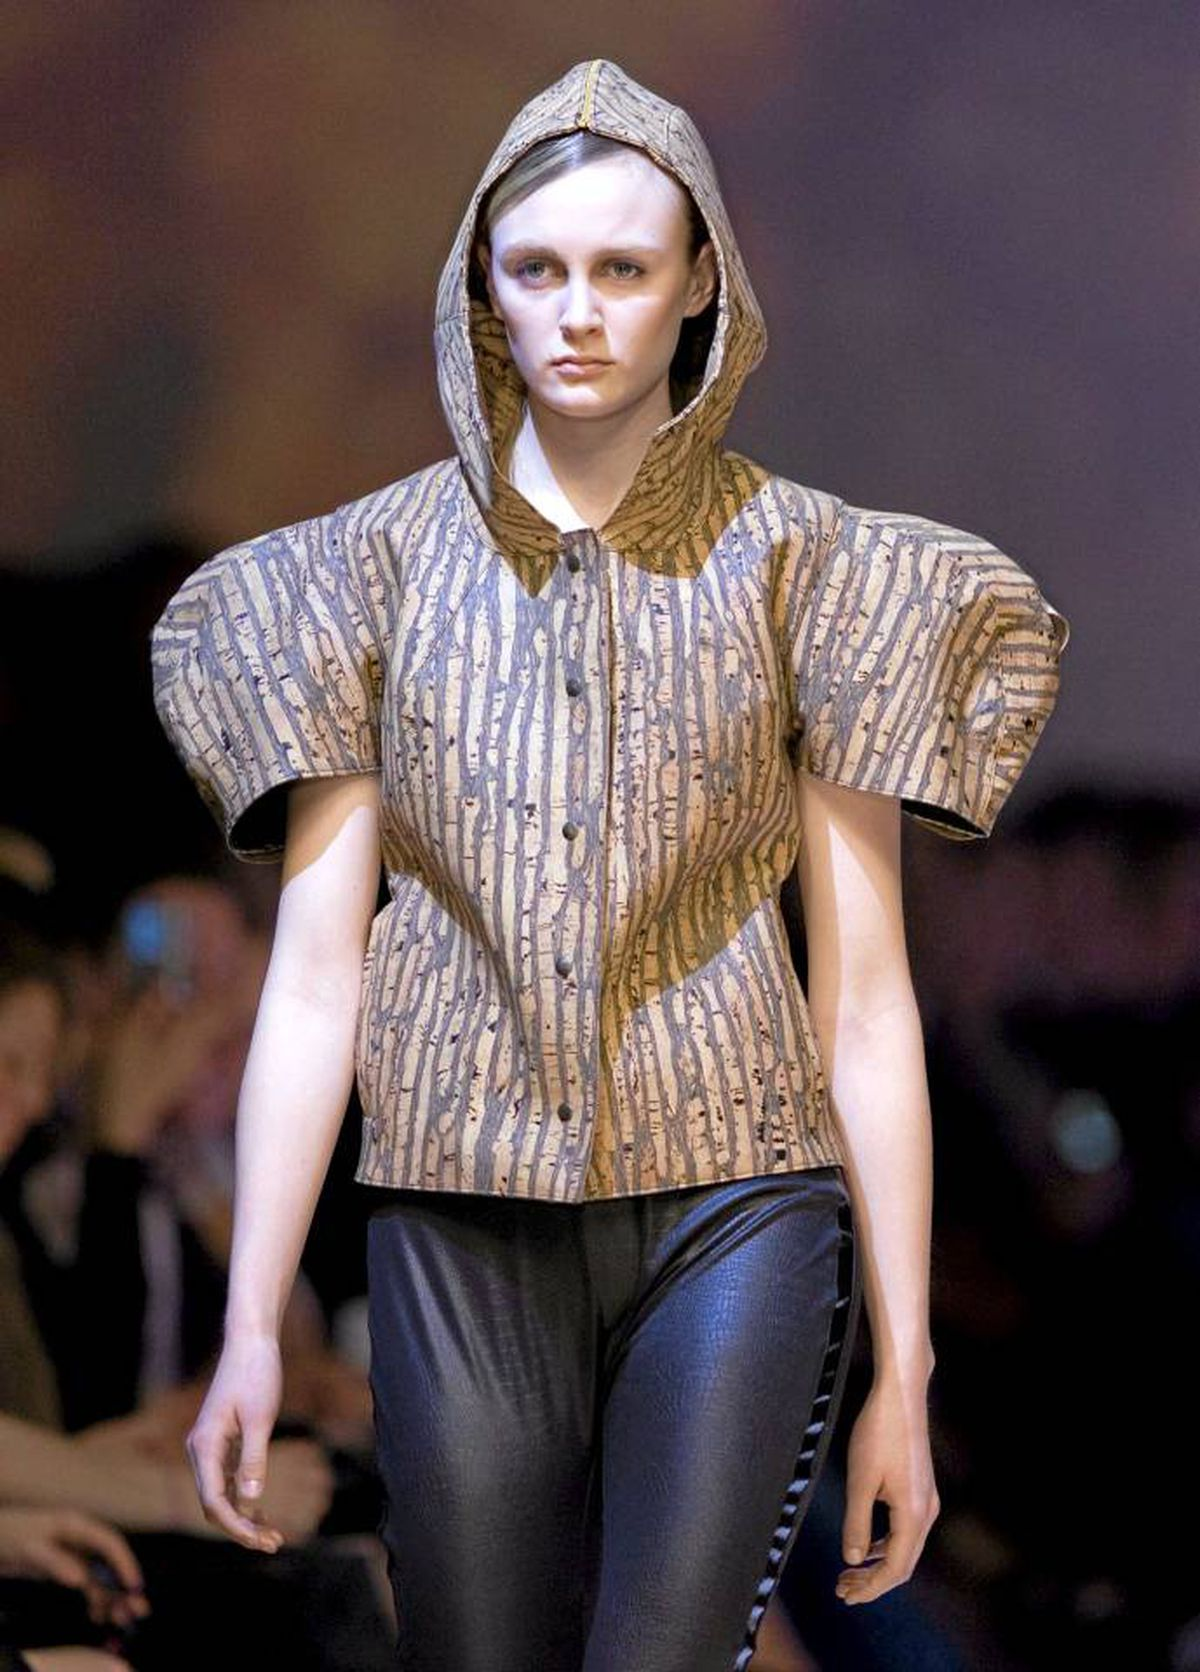 Evan Biddell played with exaggerated volume by sculpting clothes away from the body. Unusual fabrics, like the cork shown here, were manipulated into shapes that ranged from highly wearable to downright outrageous.